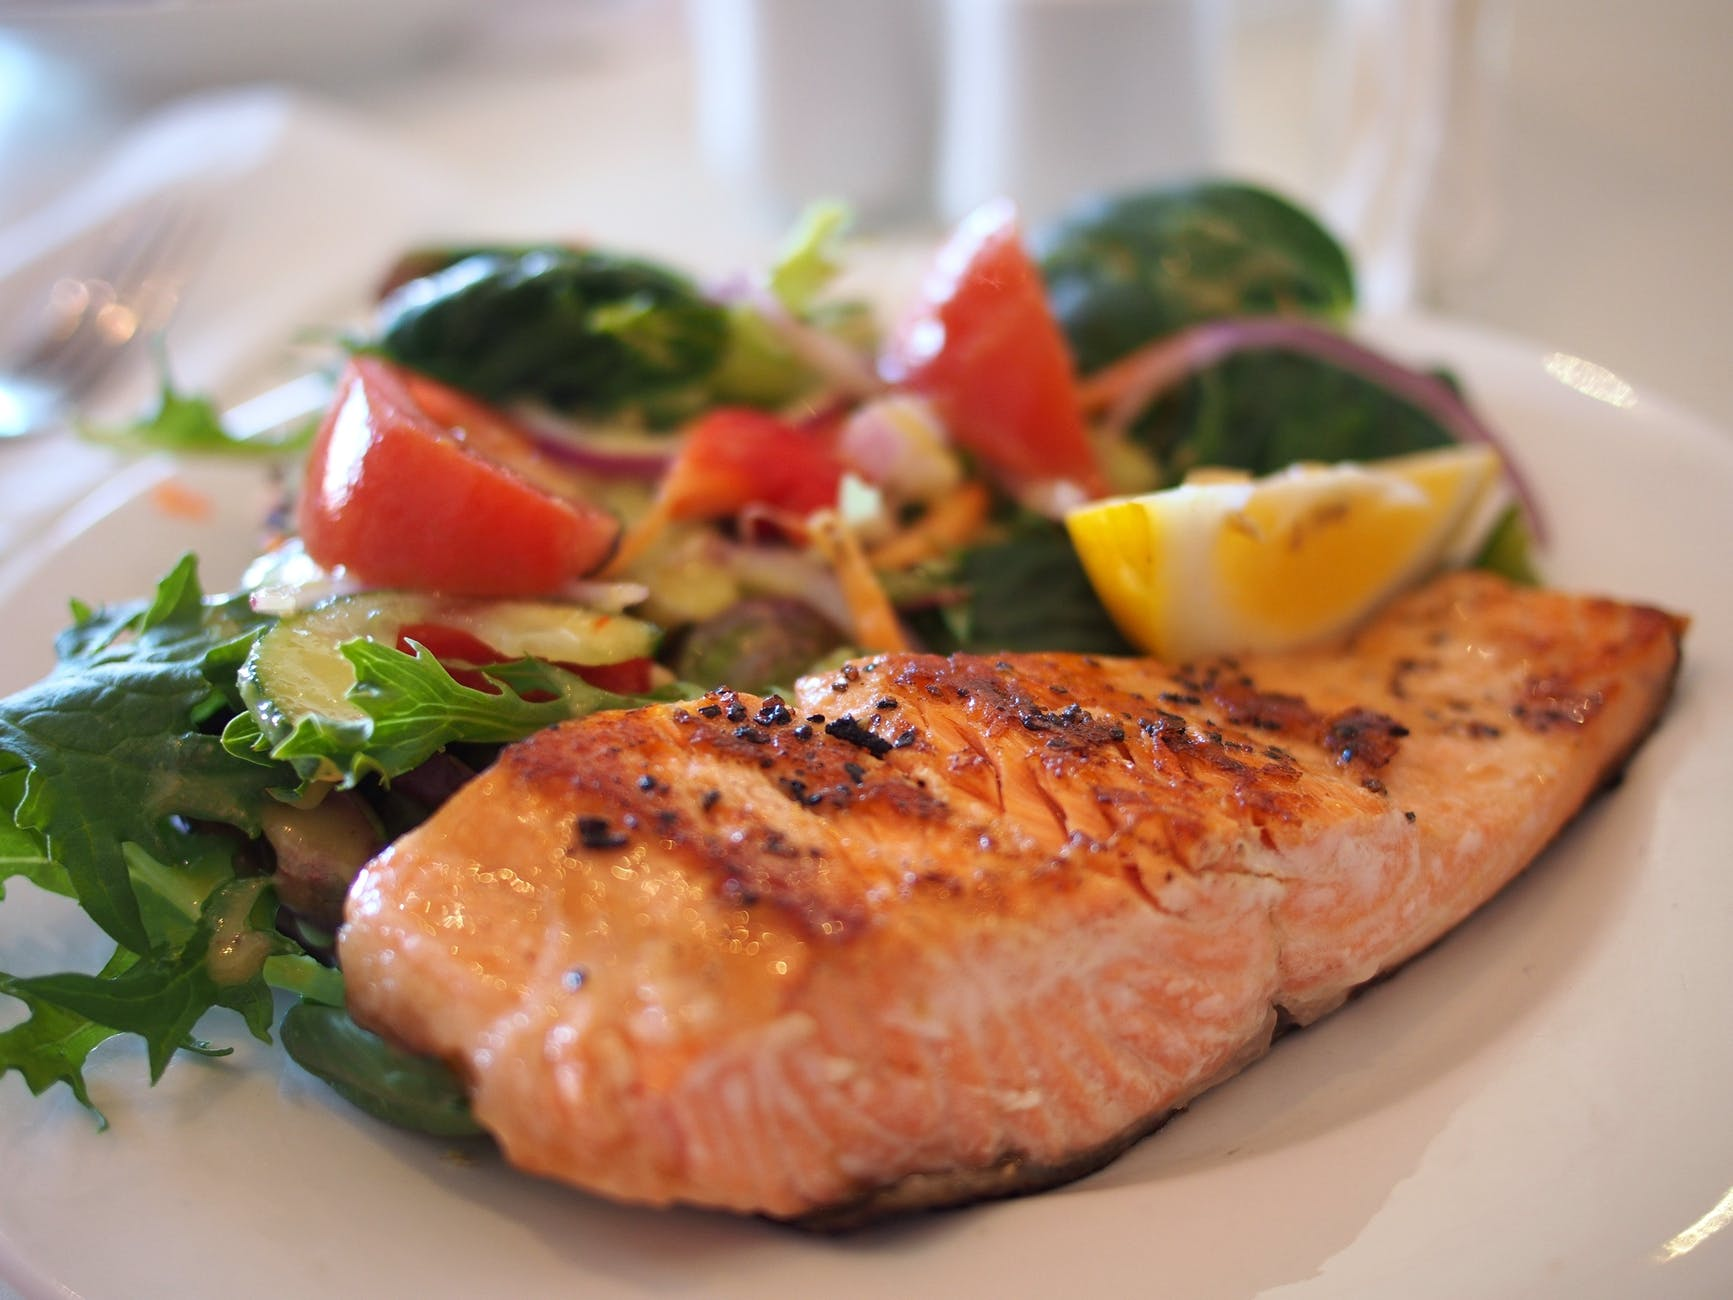 salmon-dish-food-meal-46239.jpeg